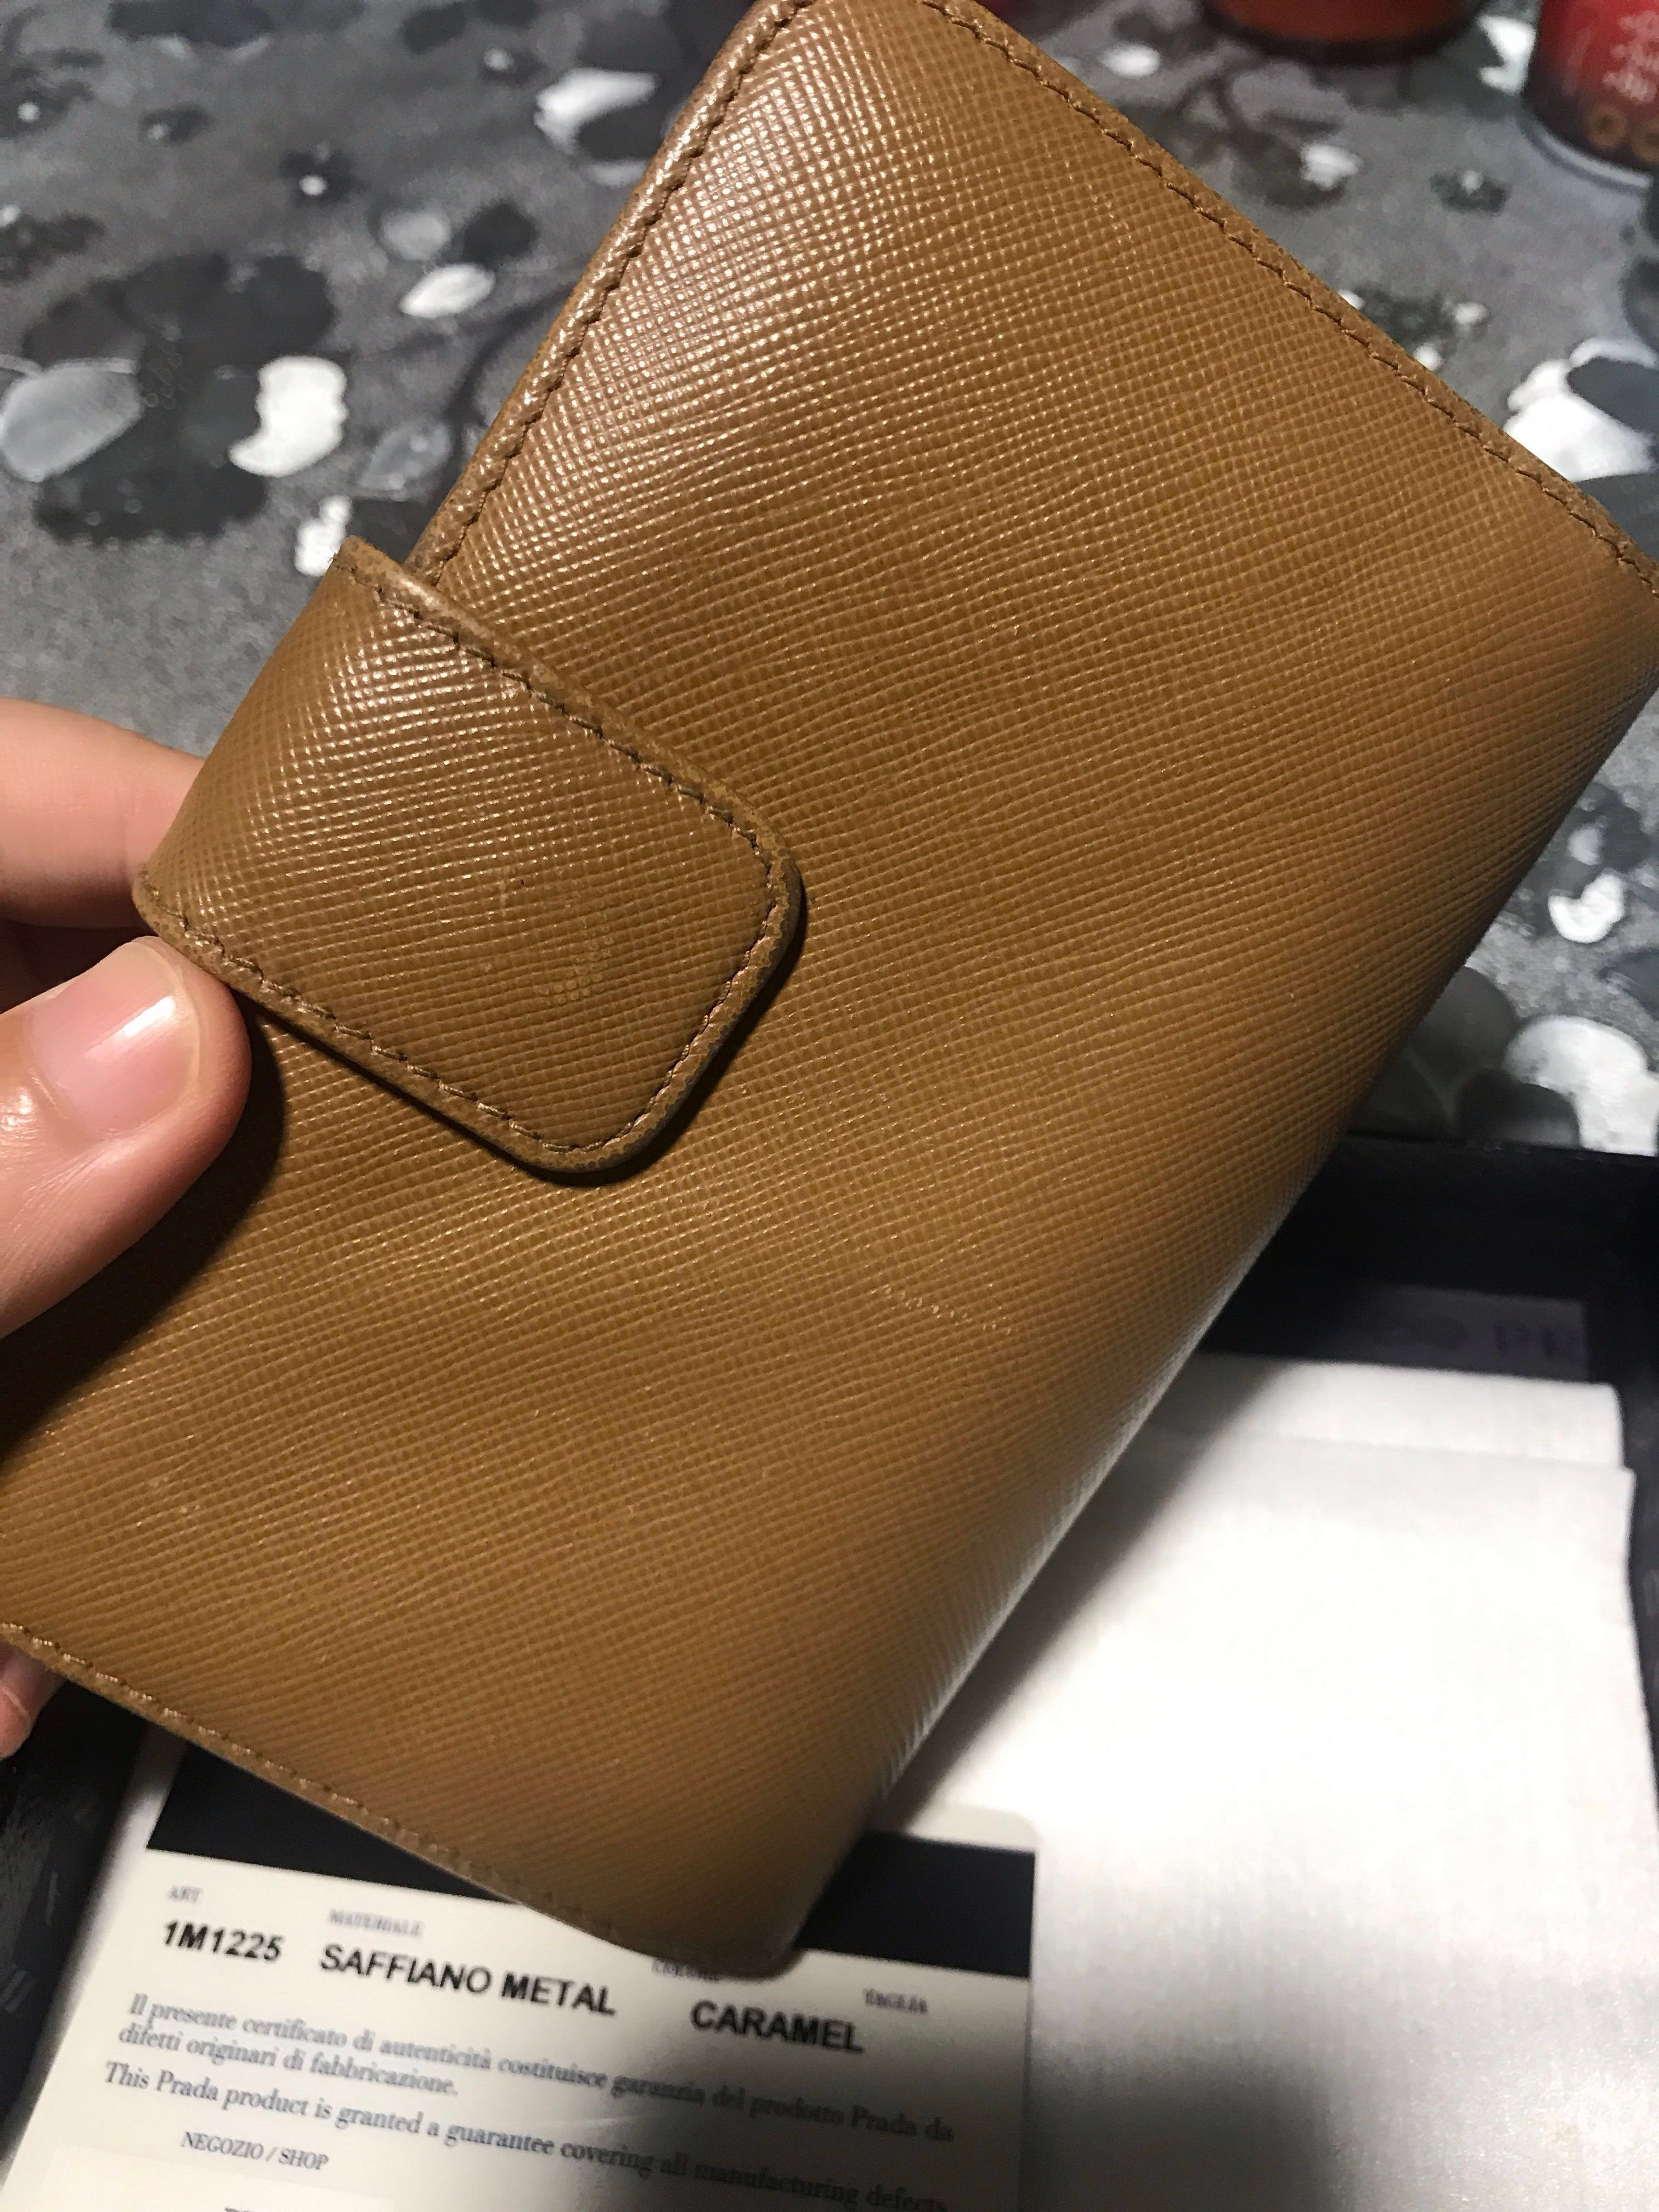 0b67e7818900 Today deal! Authentic Prada Saffiano metal wallet in Caramel, Women's  Fashion, Bags & Wallets, Wallets on Carousell